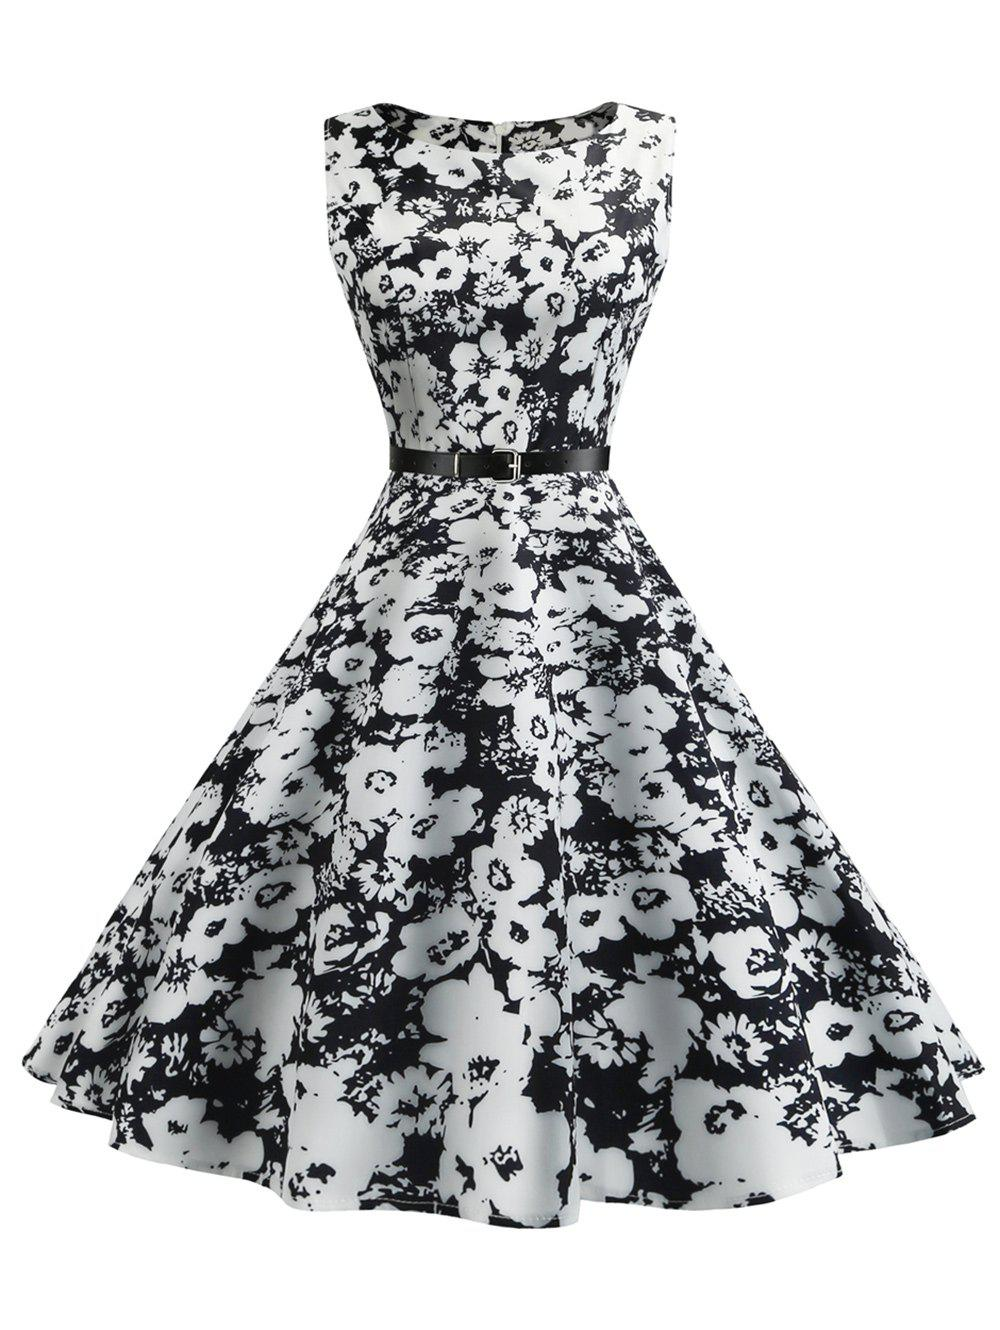 Vintage Sleeveless Floral Fit and Flare Dress sleeveless floral print fit and flare dress